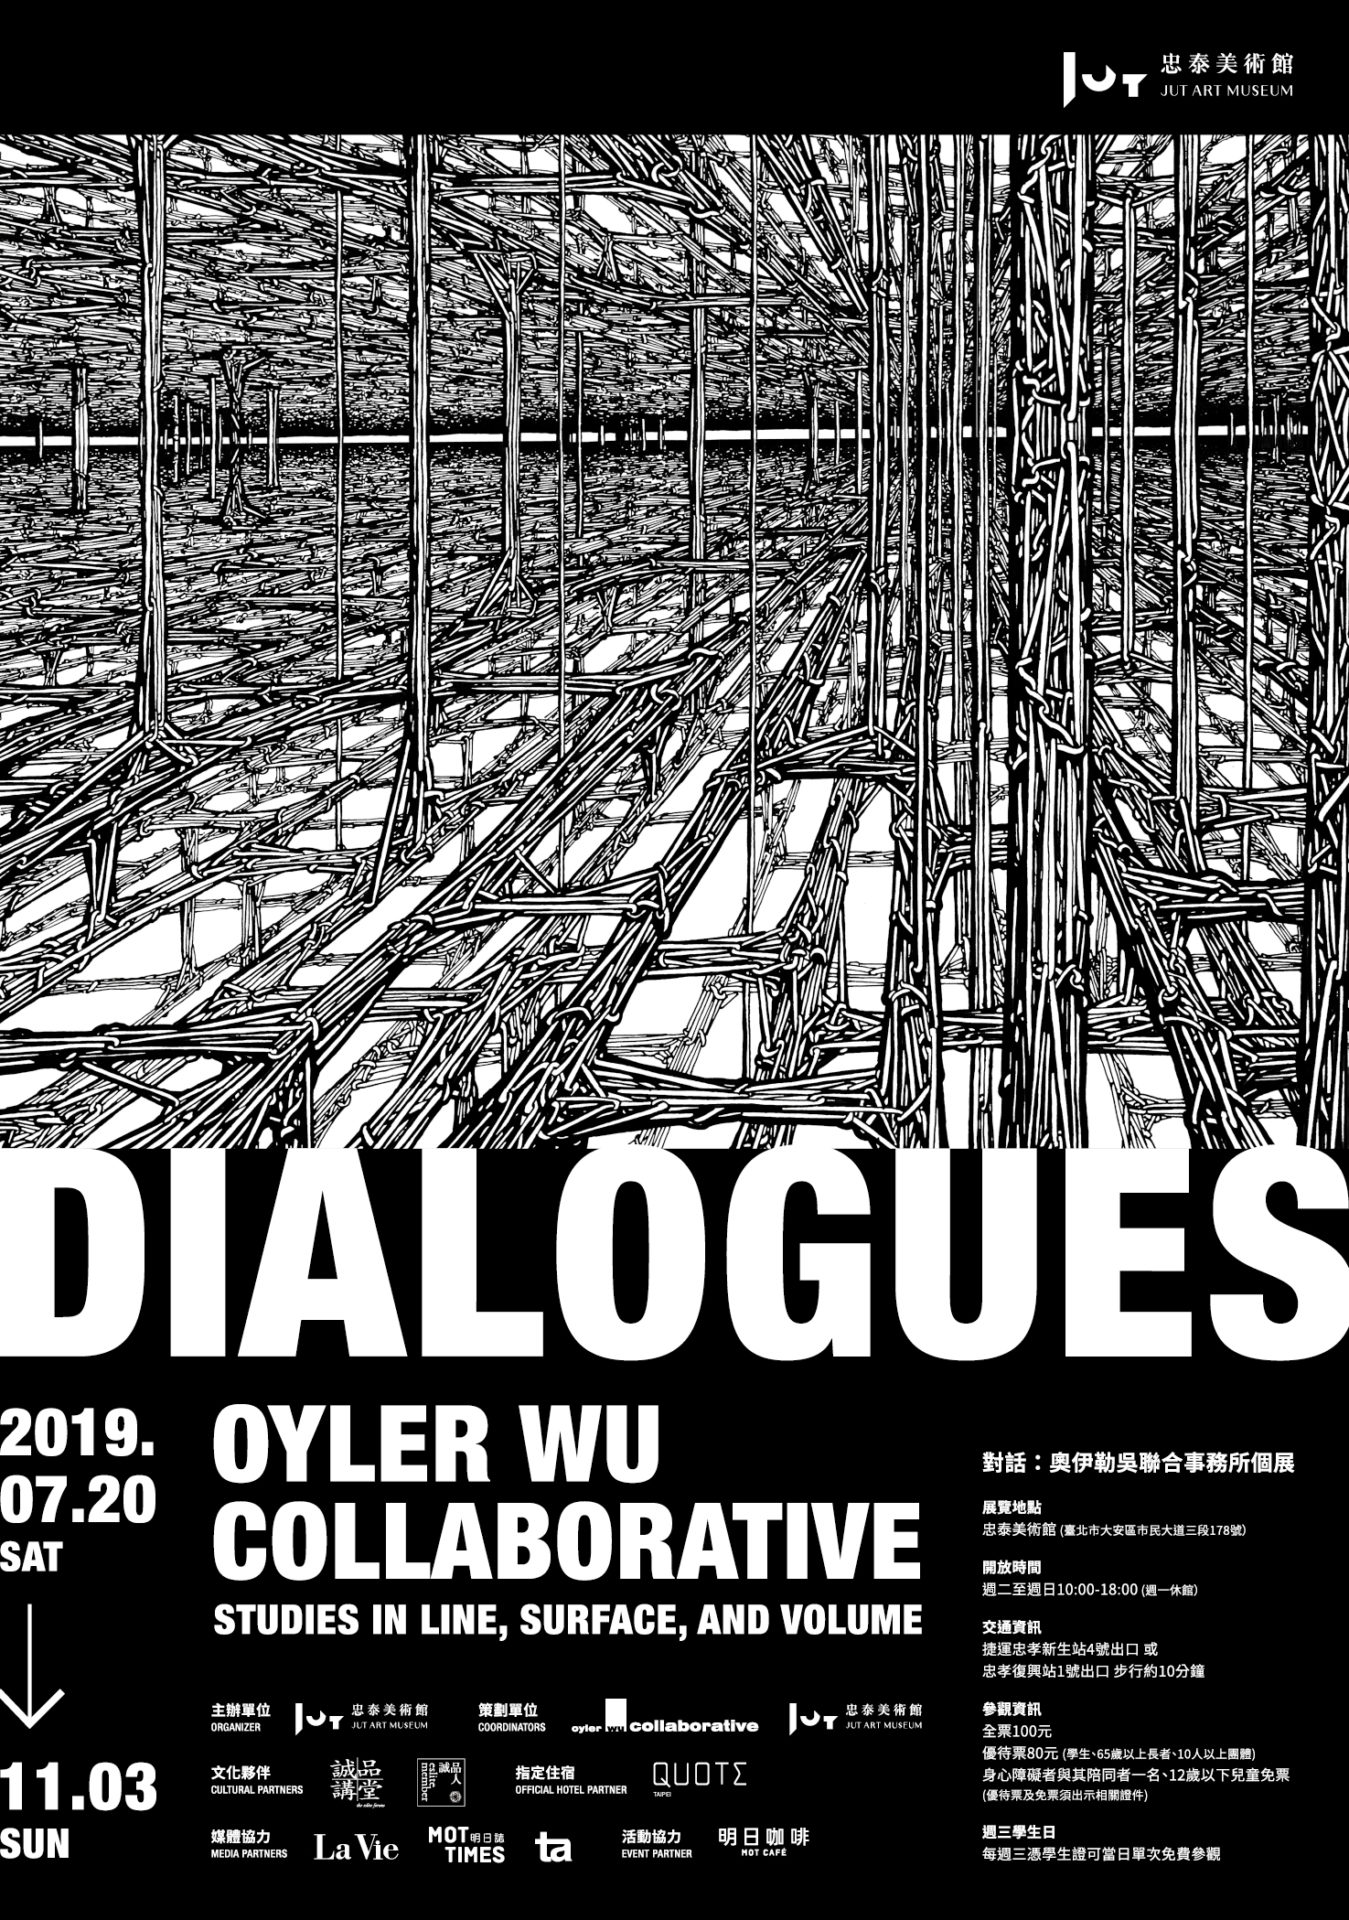 忠泰美術館:2019/7/20-11/3 【DIALOGUES: Oyler Wu Collaborative】